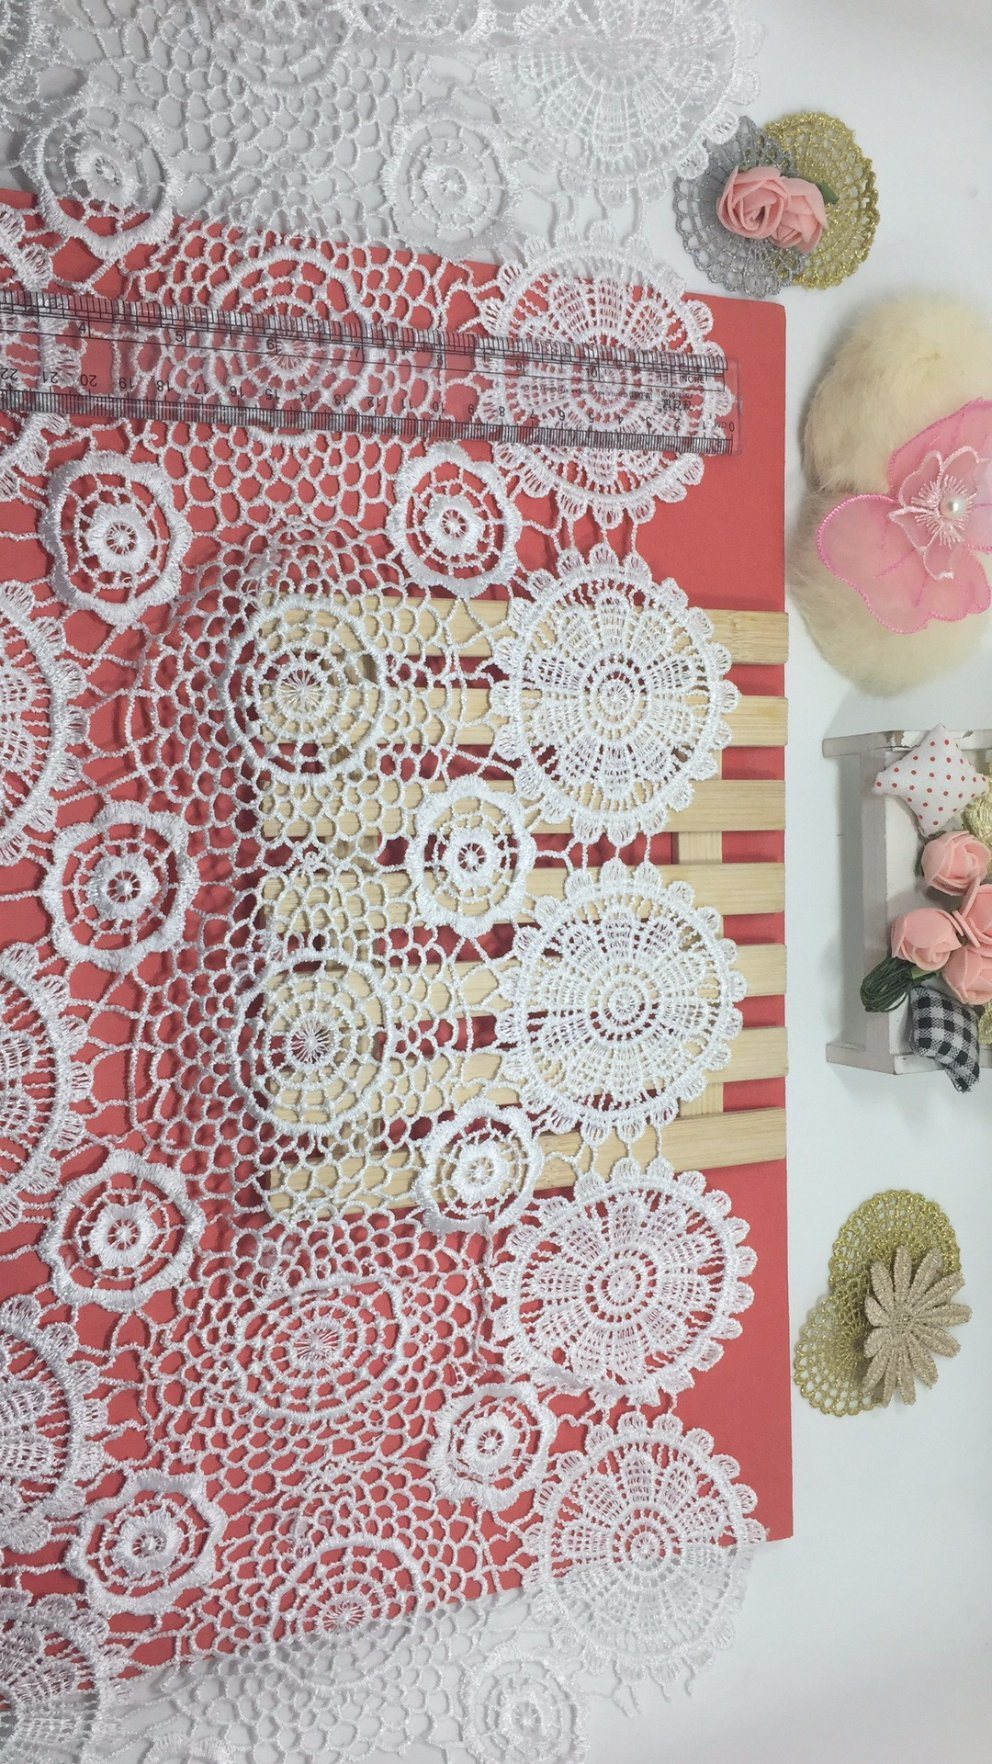 New Design 40cm Width Embroidery Trimming Nylon Polyester Lace for Garments & Home Textiles & Curtain Accessory